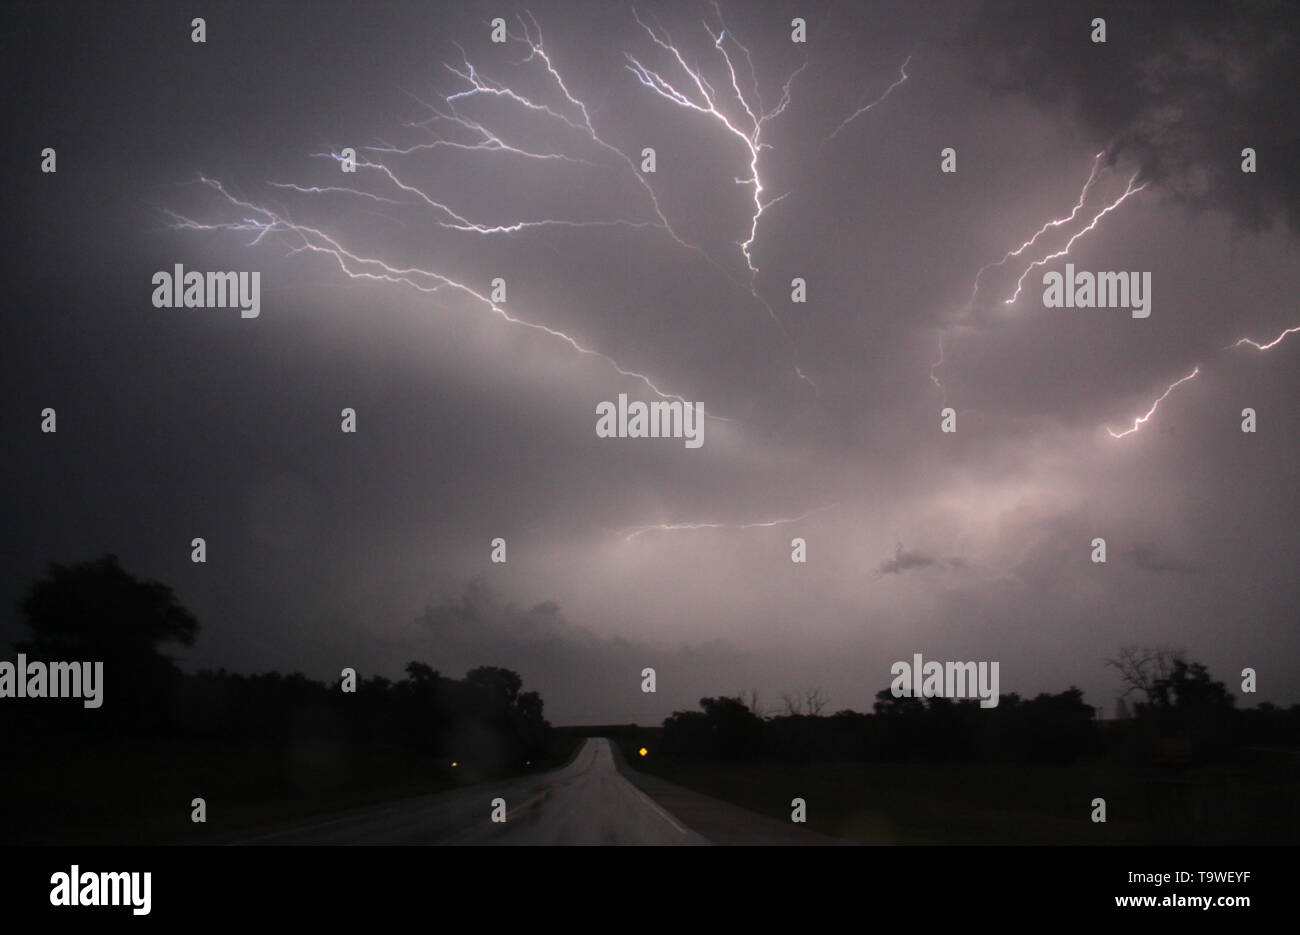 May 20, 2019: Oklahoma City, Oklahoma, U.S.: Lightning strikes at night from huge squall line covering 6 states areas in the Oklahoma City as flooding rain and severe storms, including tornadoes, are predicted in the Southern Plains through late Monday. Tornado watches in effect in the Texas Panhandle and Oklahoma expire before midnight. Then, flooding is expected to become the major concern overnight from Oklahoma City to Tulsa and to the northeast. The tornado outbreak has not been as severe as feared as twisters have mostly avoided population centers. (Credit Image: © Gene Blevins/ZUMA Wire - Stock Image